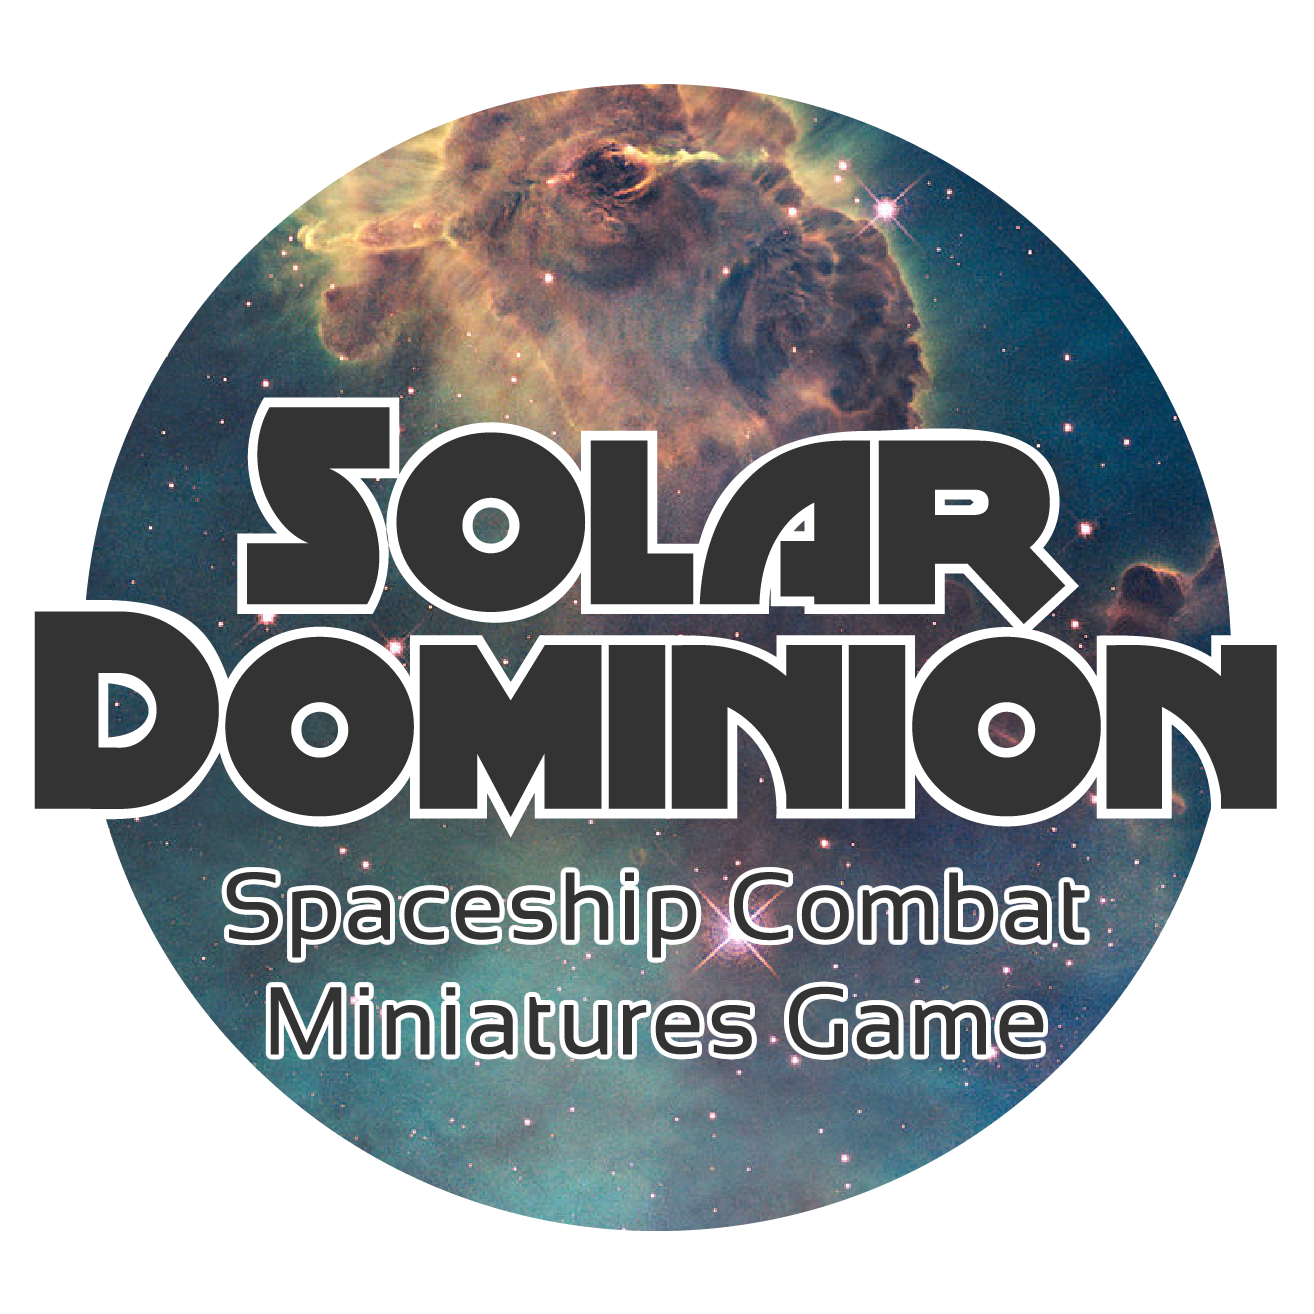 Solar Dominion - A tabletop spaceship skirmish wargame and science fiction universe. Find out more at solardomion.co.uk